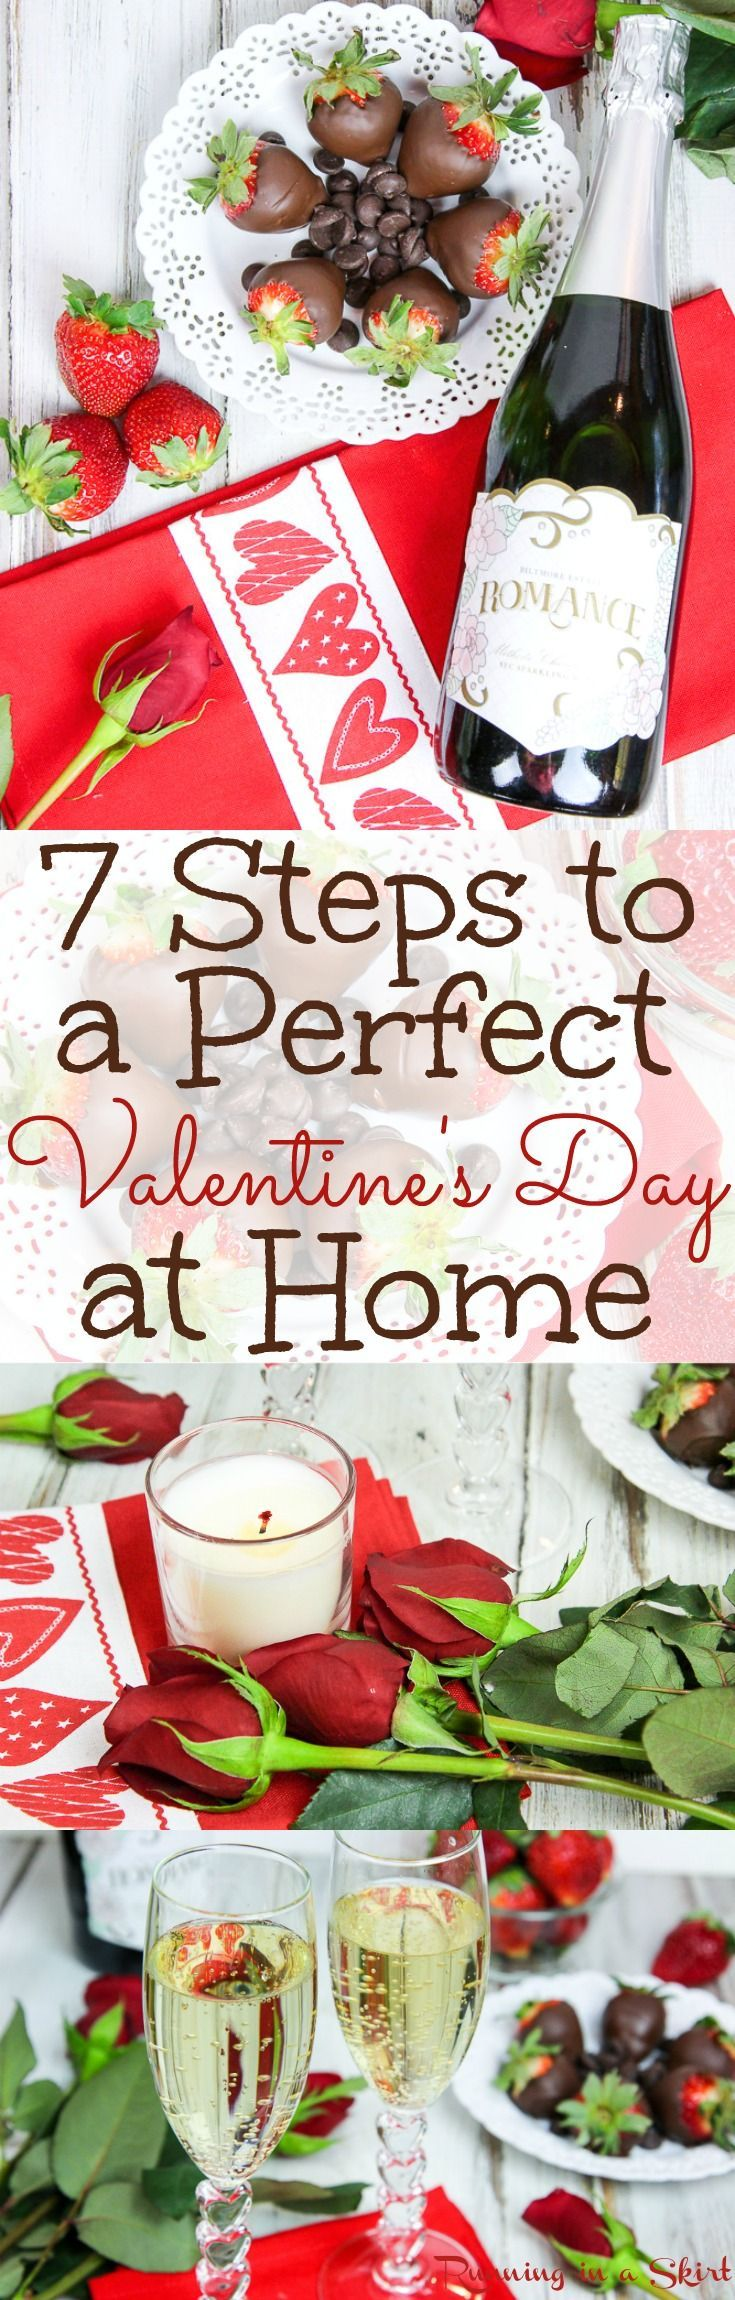 7 Steps to the Perfect Valentine's Day at Home! Great ideas for romantic and fun date nights. Includes directions for DIY chocolate covered strawberries and a romantic dinners menu (vegetarian and non-vegetarian version) for two! Creative, unique and budget friendly! / Running in a Skirt AD @ZLivingUS Altard